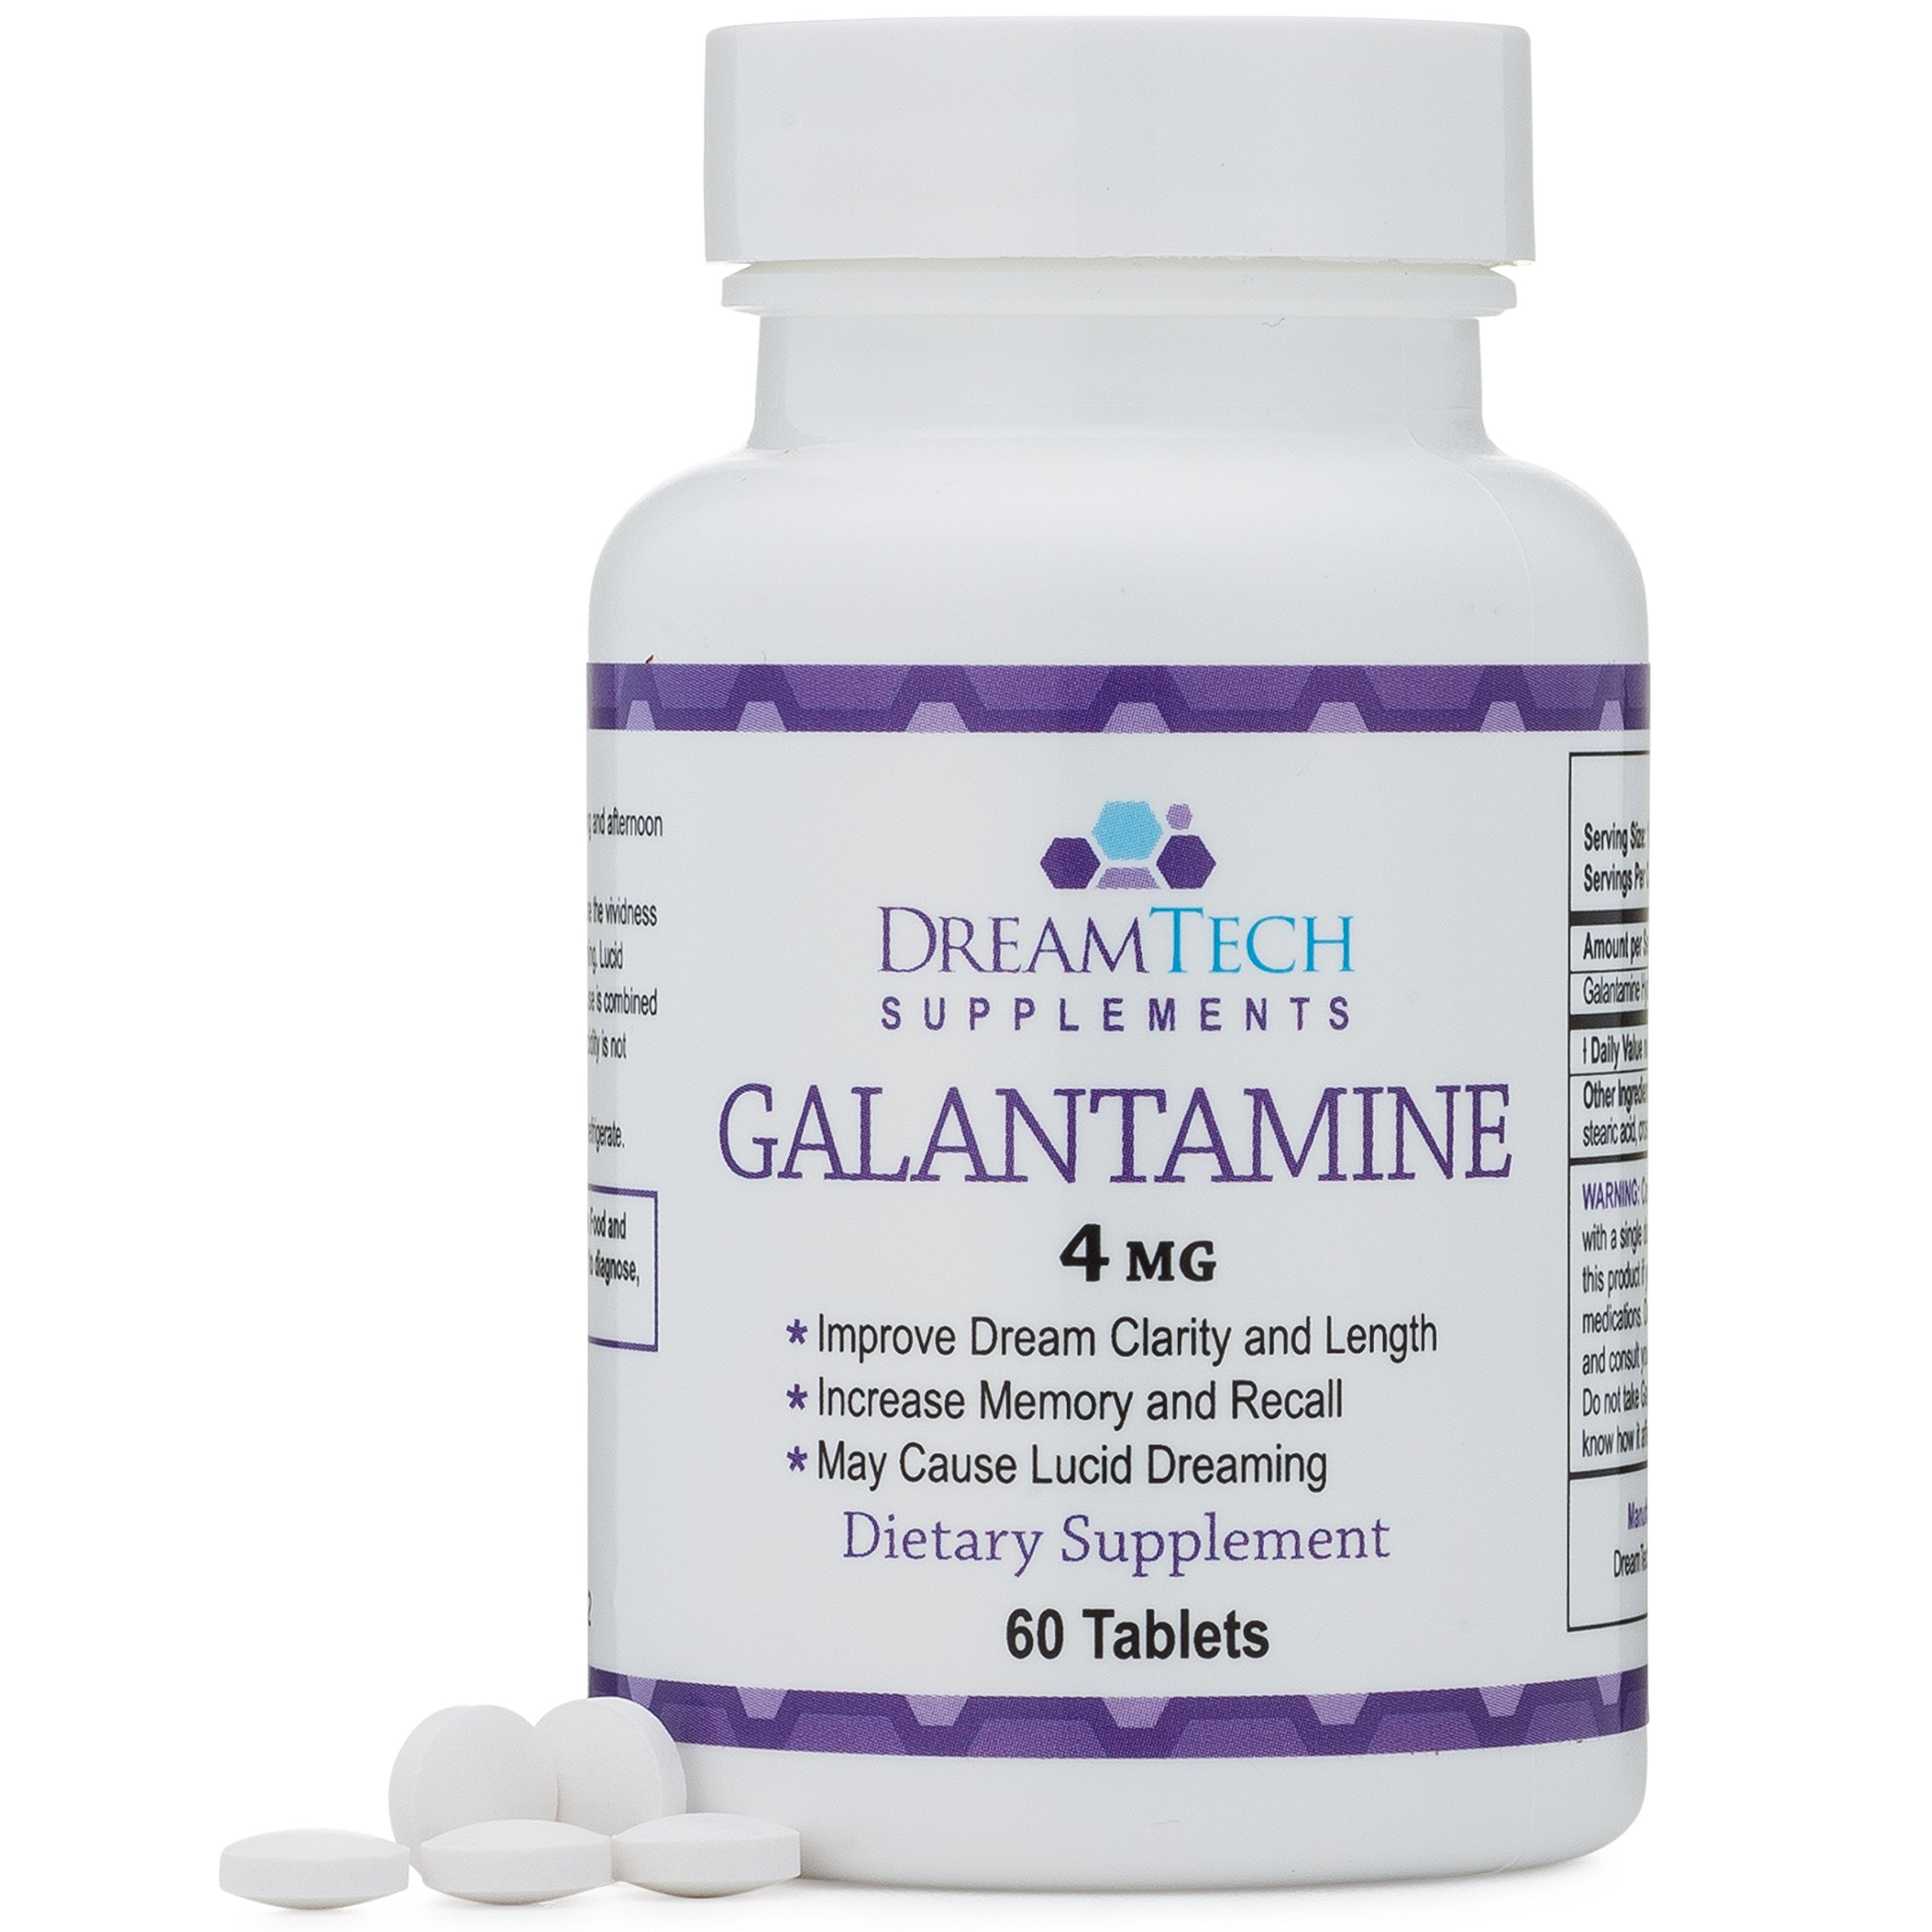 Galantamine - Lucid Dreaming & Nootropic Supplement - 4 Mg - 60 Tablets